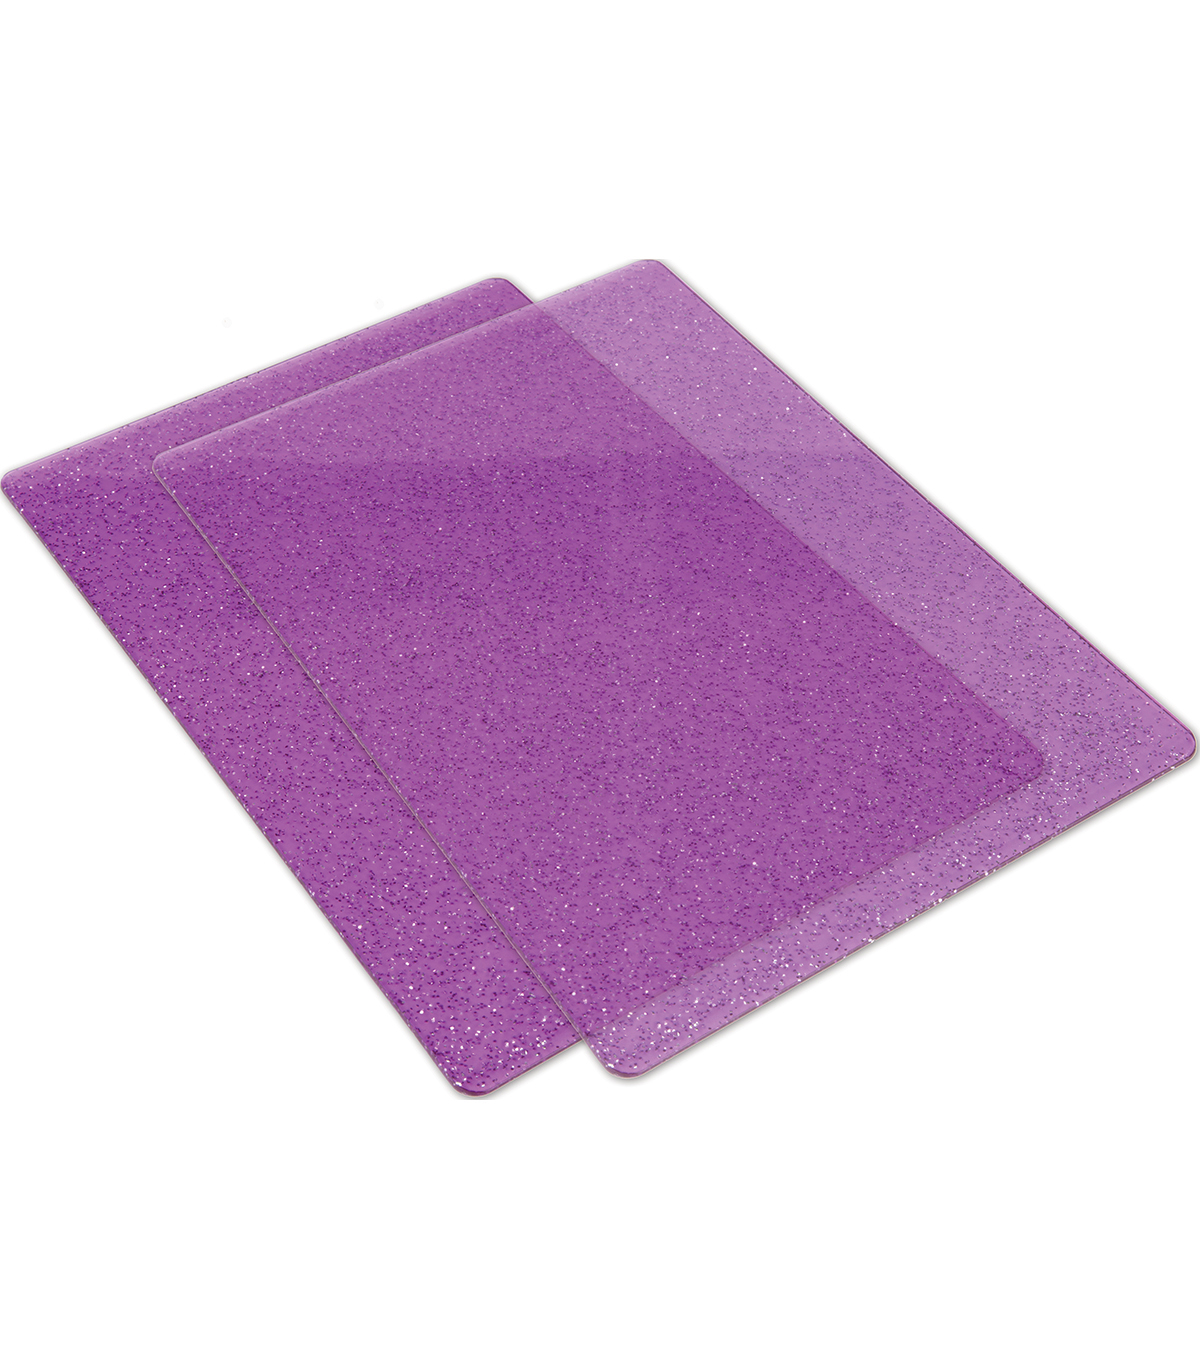 Sizzix Big Shot 2 Pack Cutting Pads-Purple & Silver Glitter